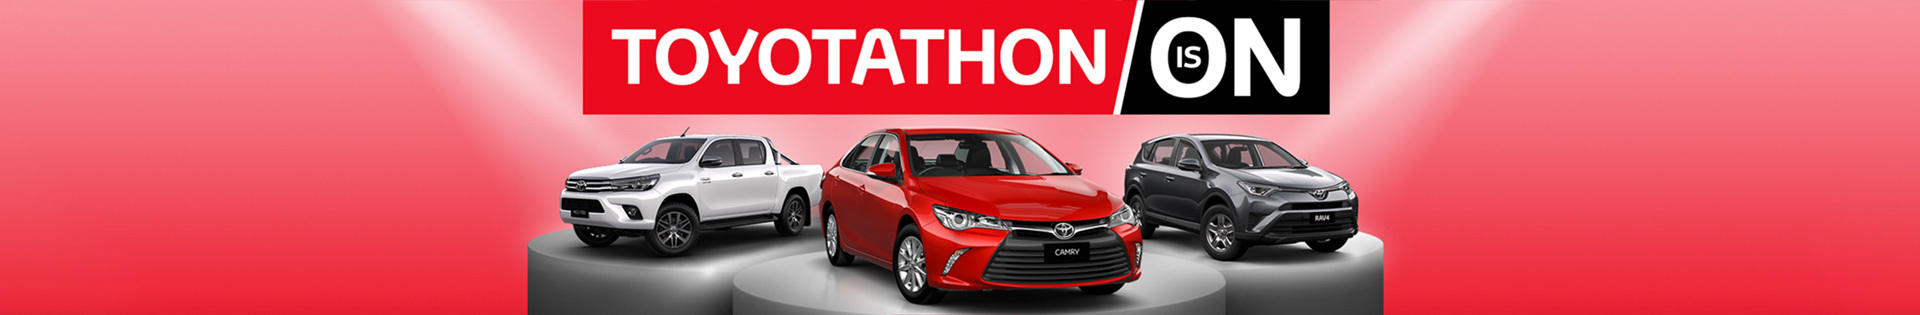 Toyota - National Offer - Toyotathon Is On - Toyota Upgrade Advantage - Great Va